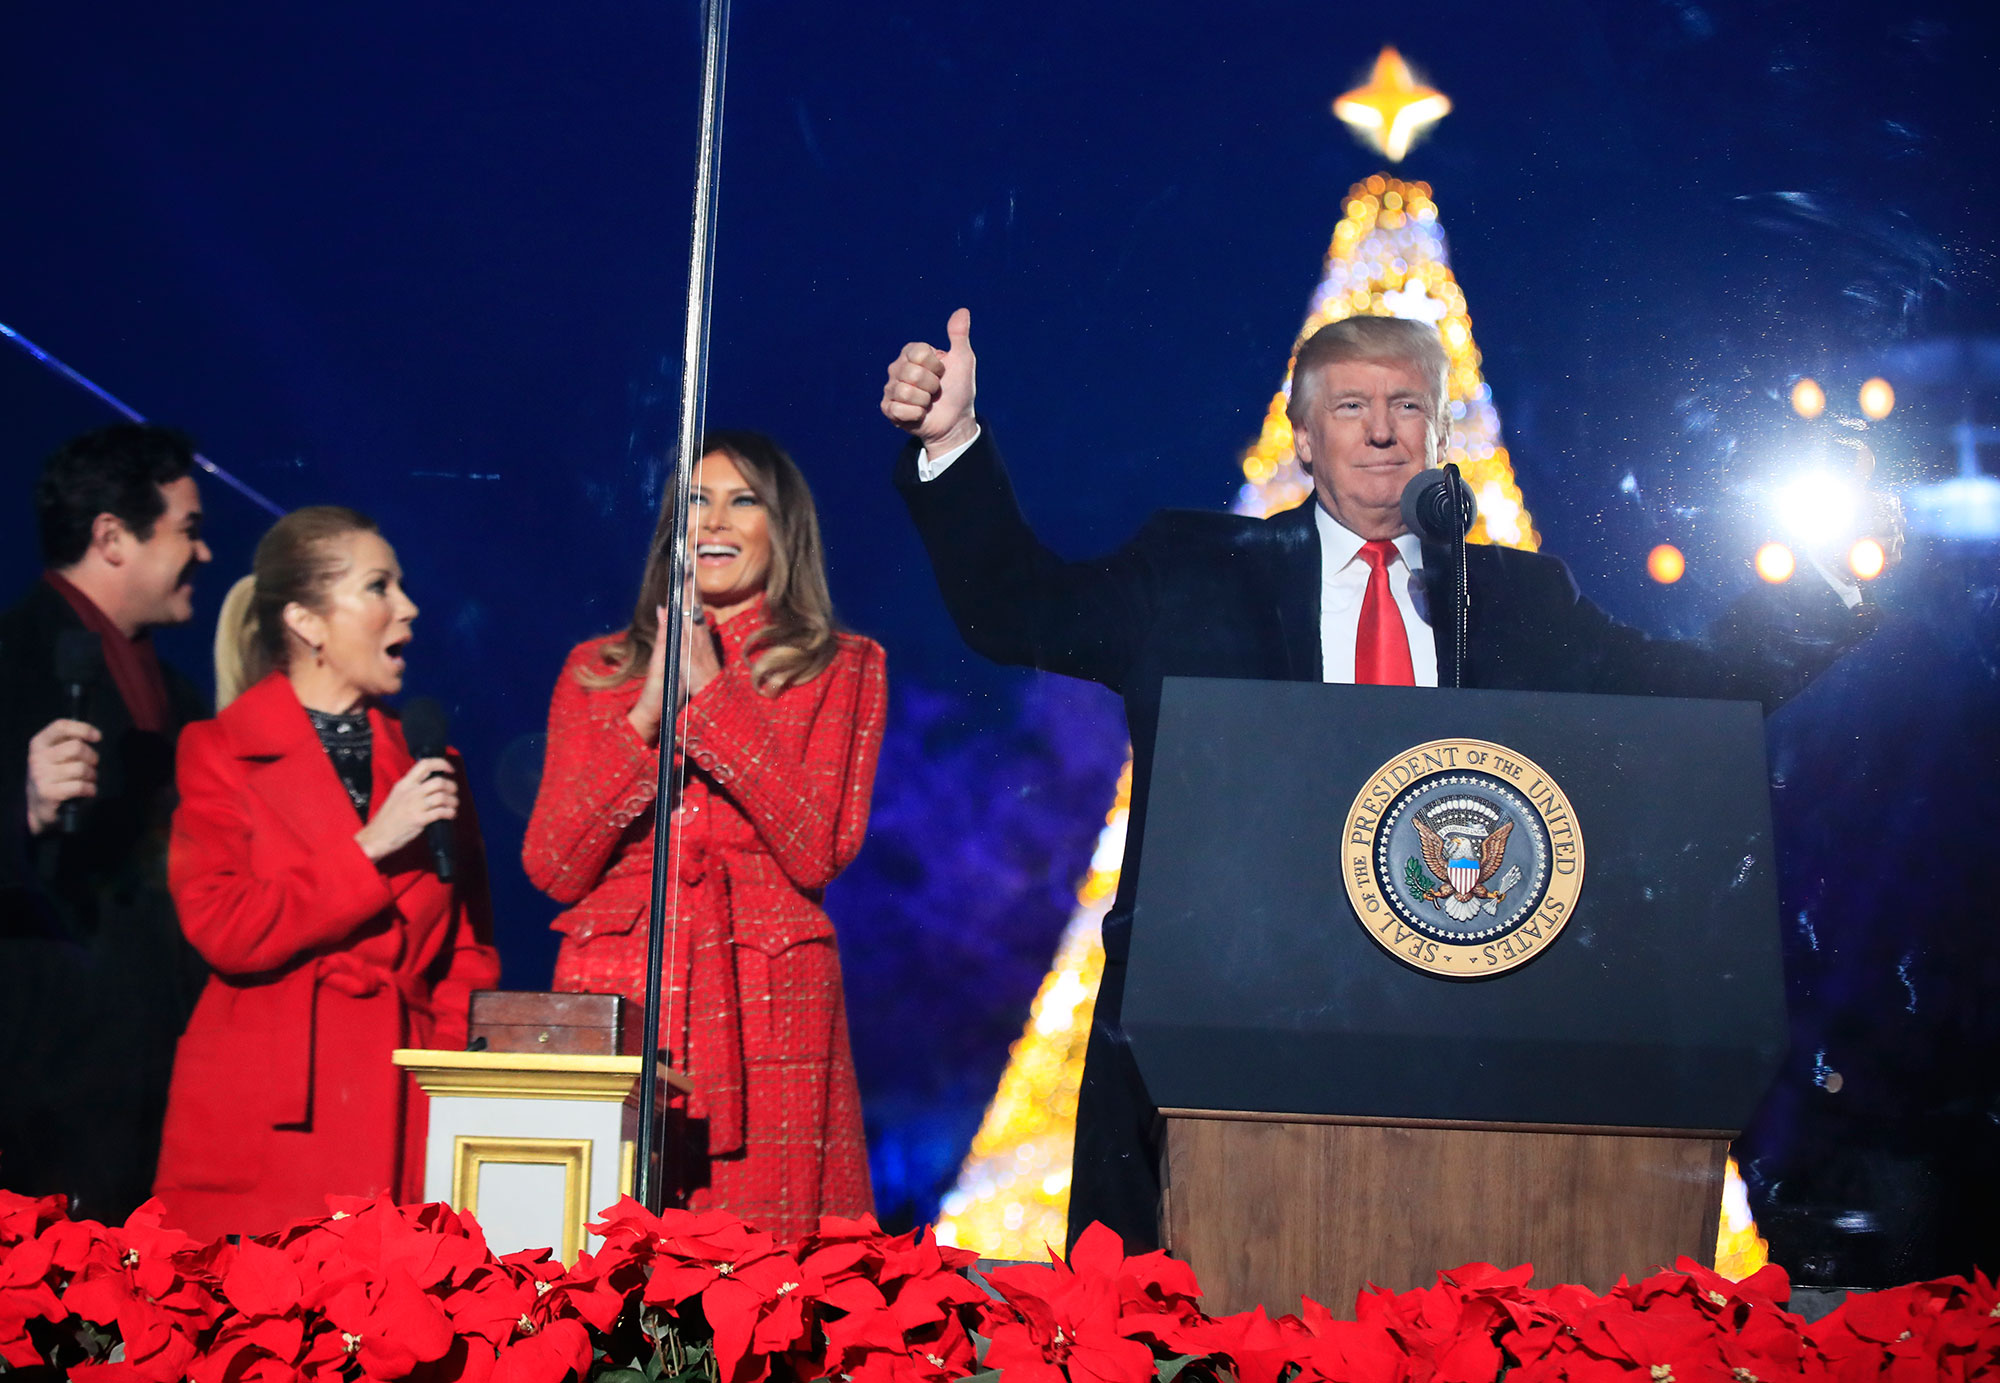 <div class='meta'><div class='origin-logo' data-origin='none'></div><span class='caption-text' data-credit='Manuel Balce Ceneta/AP Photo'>President Donald Trump and first lady Melania Trump, cheer after lighting the 2017 National Christmas Tree during the National Christmas Tree lighting ceremony at the Ellipse.</span></div>